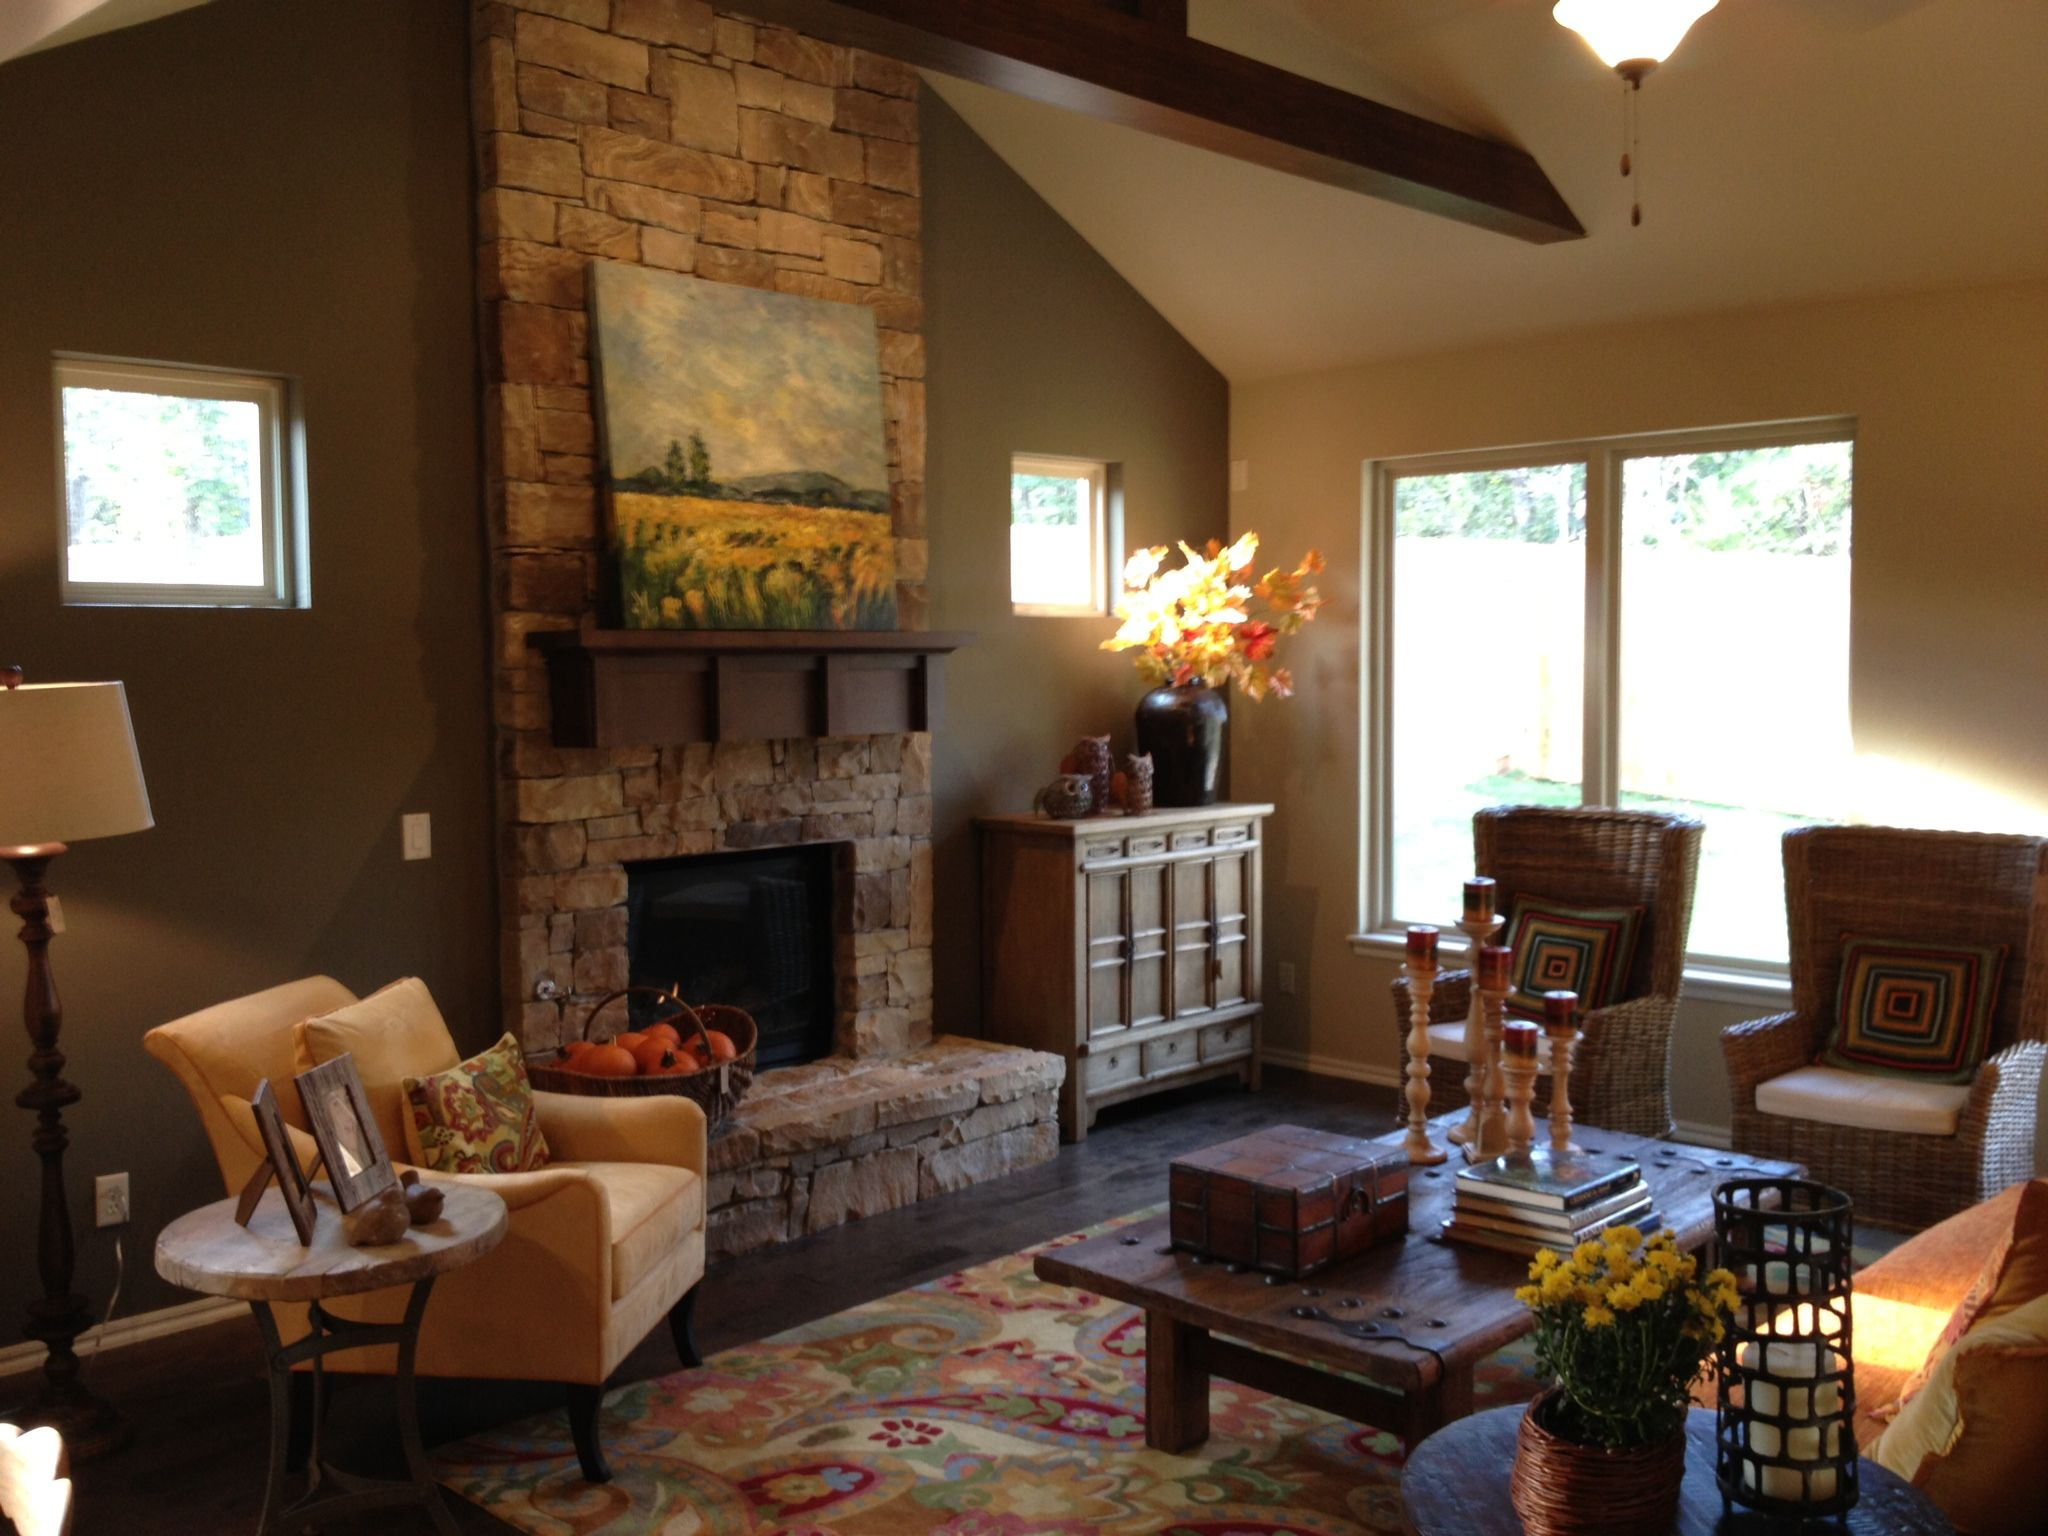 1000 images about living room decor on pinterest for Bungalow fireplace ideas